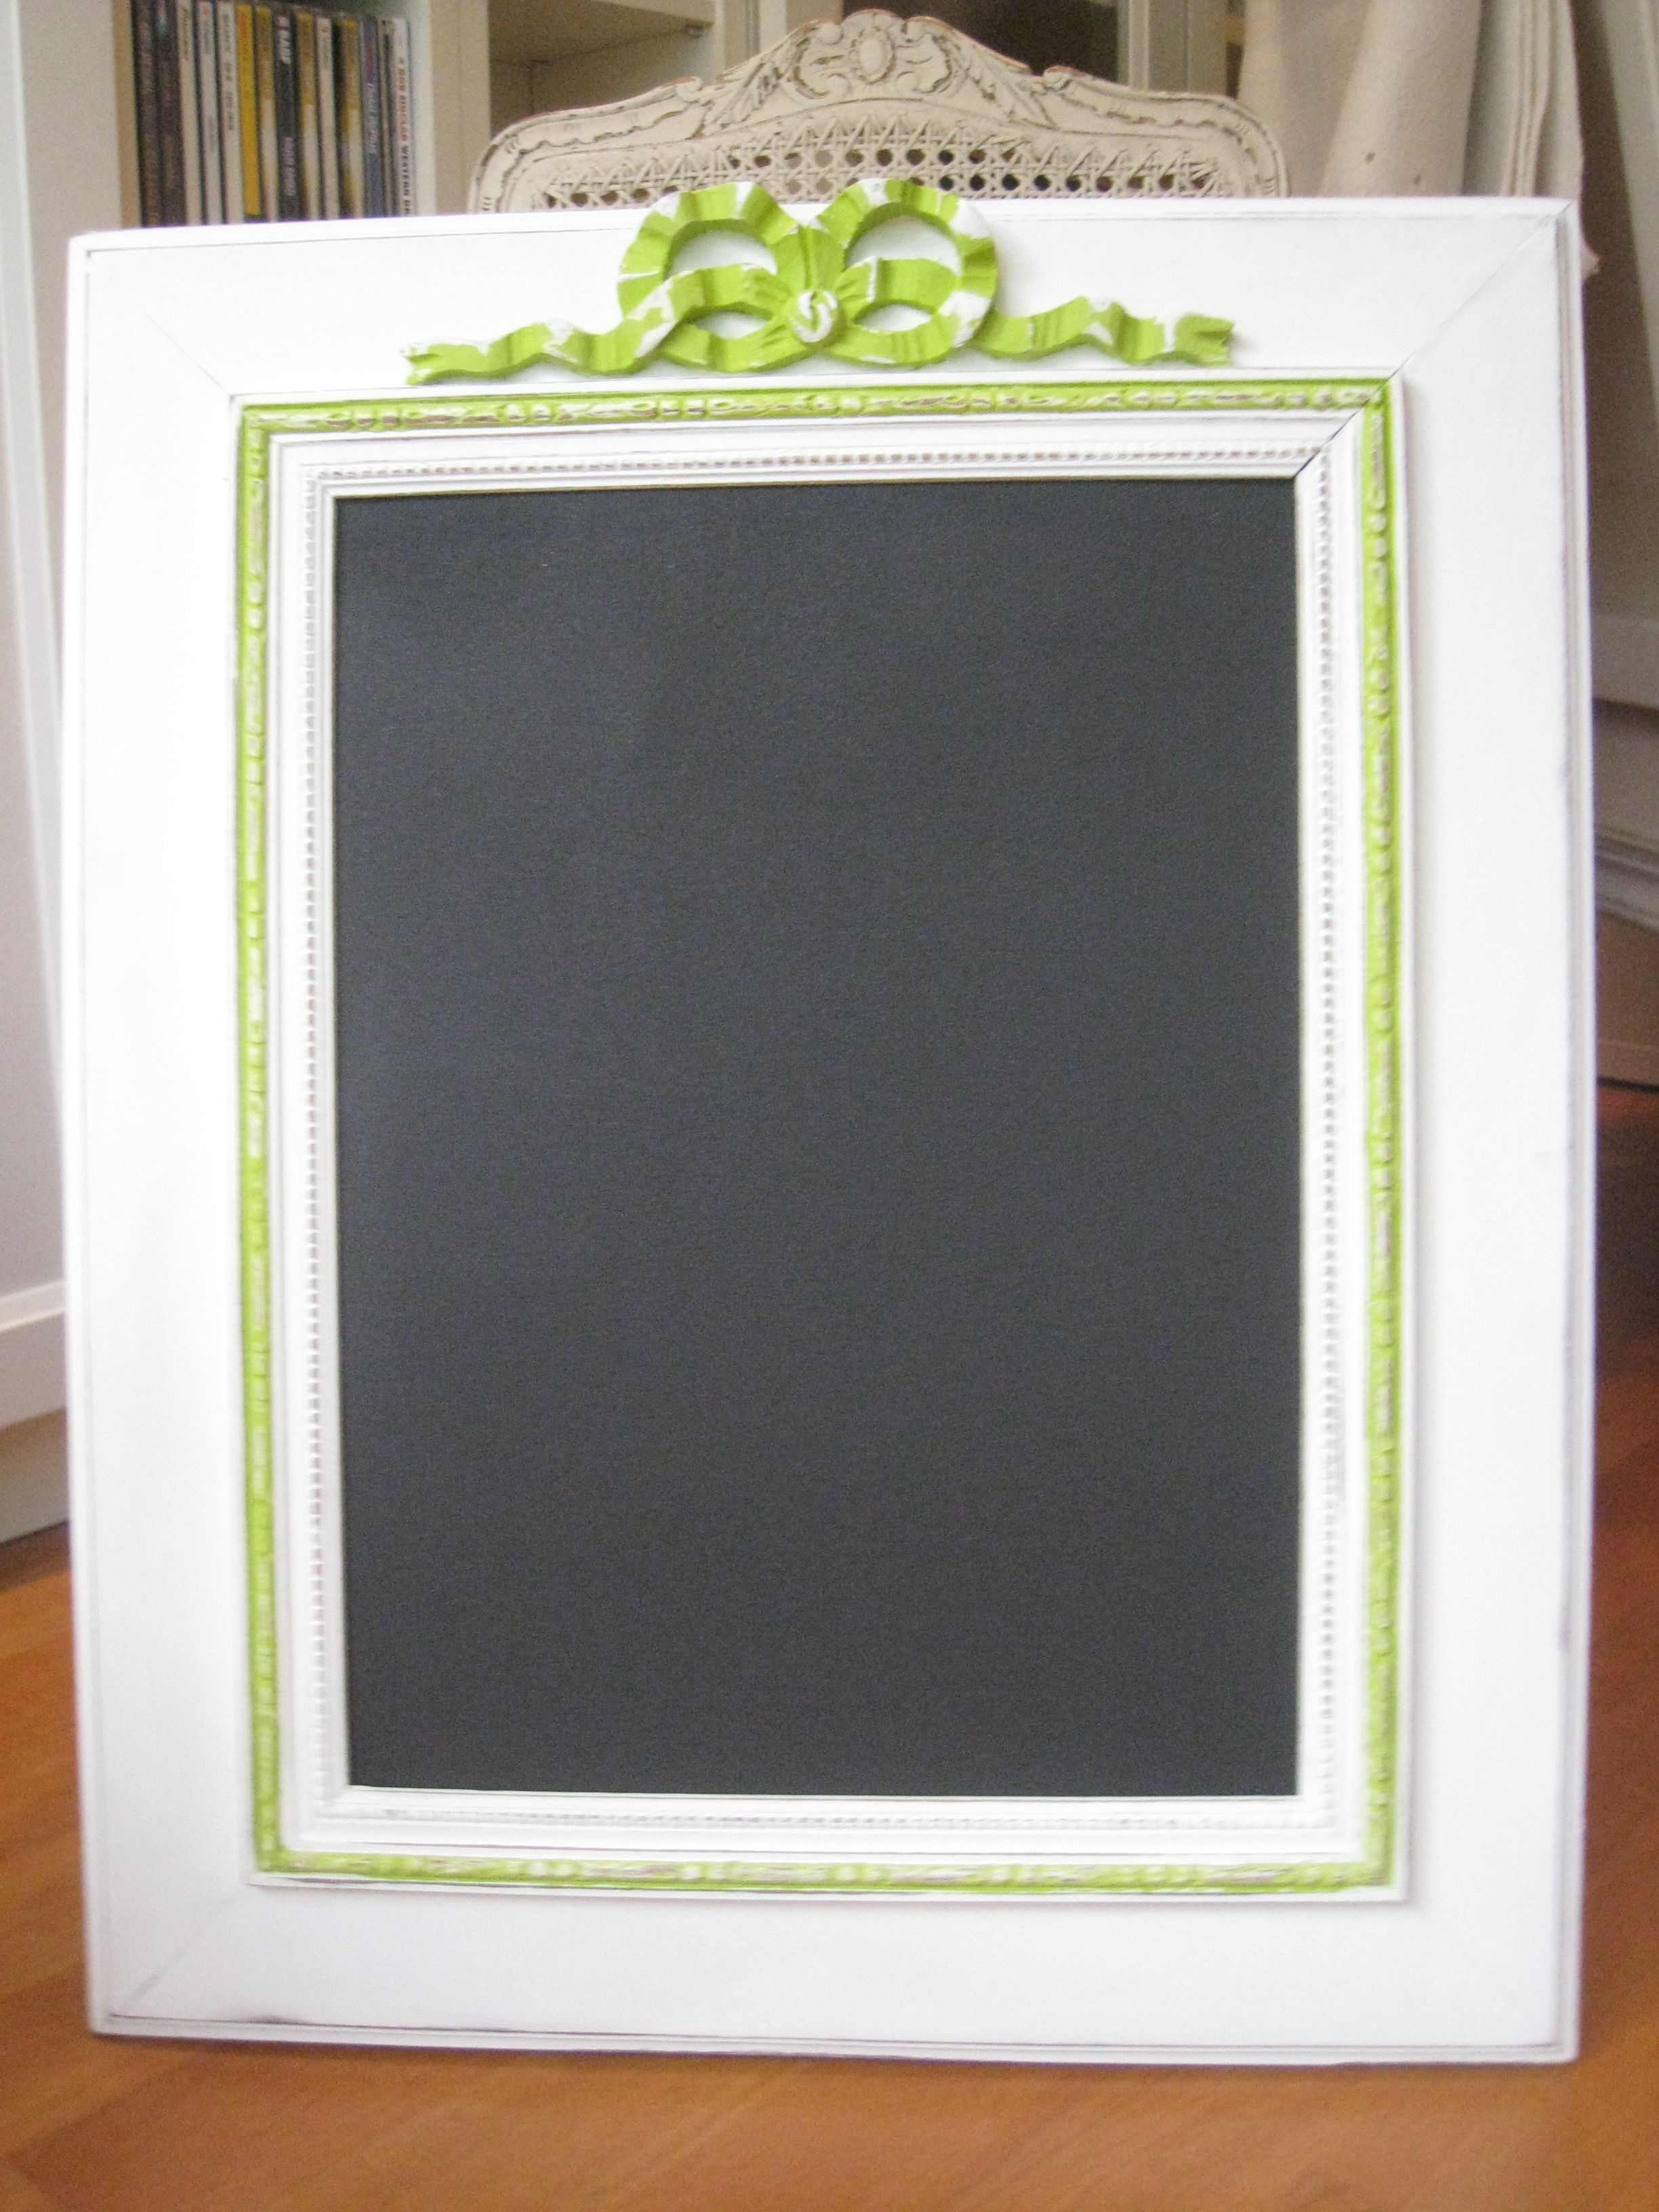 Home refurbished frame as a chalkboard! love the Fontange bow ...